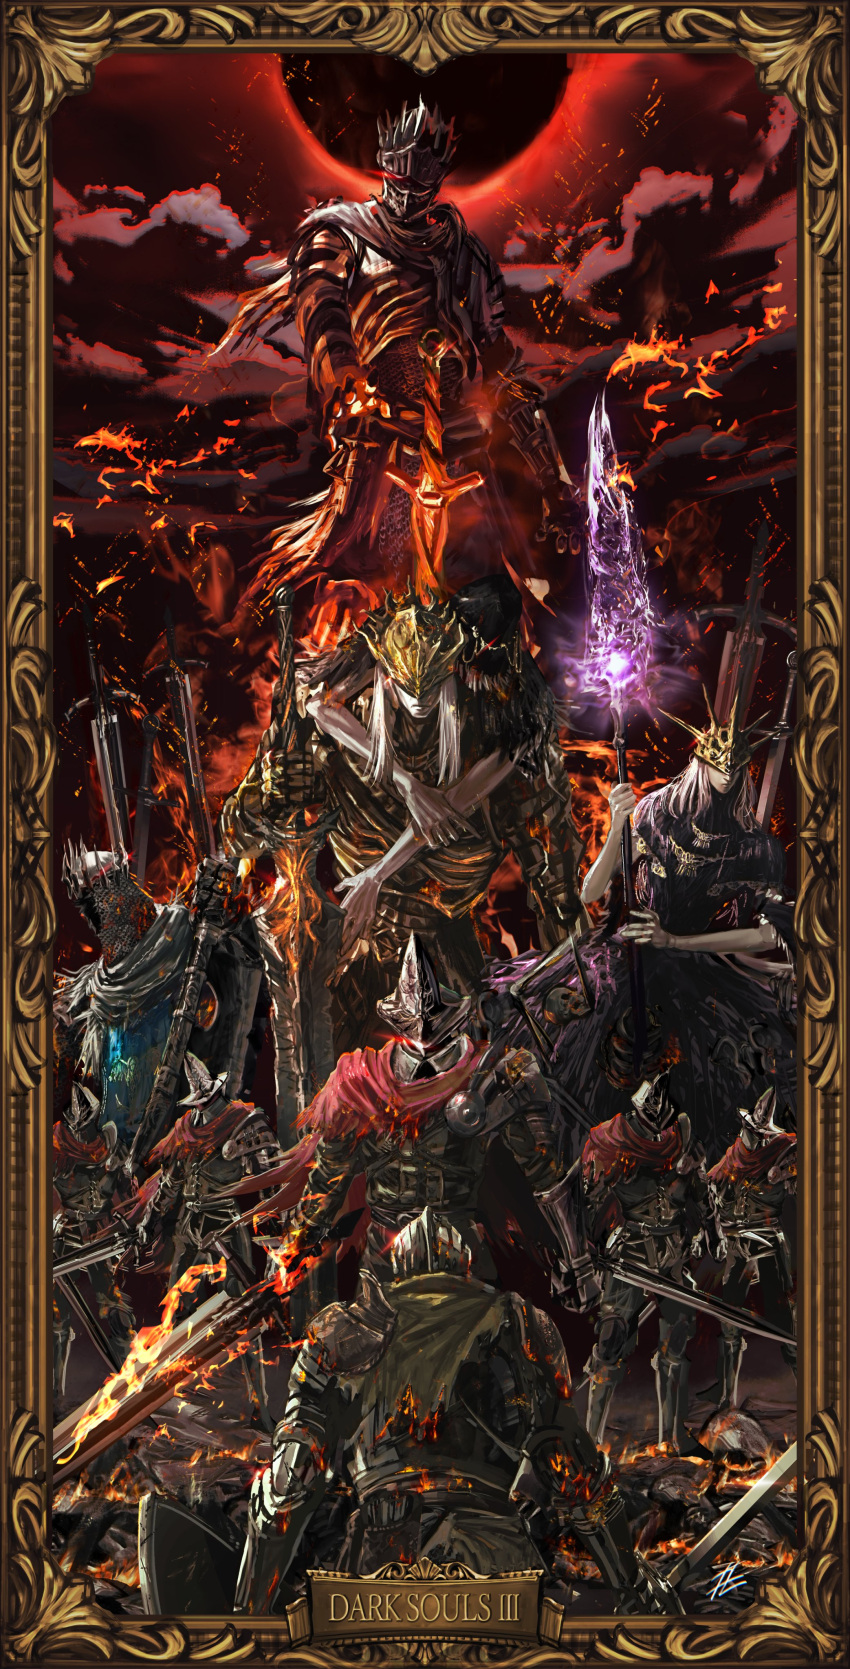 6+boys absurdres abyss_watcher aldrich_devourer_of_gods armor arms_around_neck ashen_one_(dark_souls_3) boots breastplate brothers burning cape capelet carrying chainmail cleaver closed_mouth clouds cloudy_sky covered_eyes crown dagger dark_souls dark_souls_iii eclipse embers english_text fire from_behind full_armor gauntlets giant glowing greaves hand_on_own_arm helmet highres holding holding_polearm holding_sword holding_weapon hood hood_up knight long_hair looking_at_viewer lorian_(elder_prince) lothric_(younger_prince) machete mask mrpk multiple_boys outdoors pale_skin pants pauldrons picture_frame piggyback planted_sword planted_weapon polearm red_eyes robe shield shoulder_armor siblings silver_hair skeleton skull sky soul_of_cinder souls_(from_software) standing sword weapon white_hair yhorm_the_giant